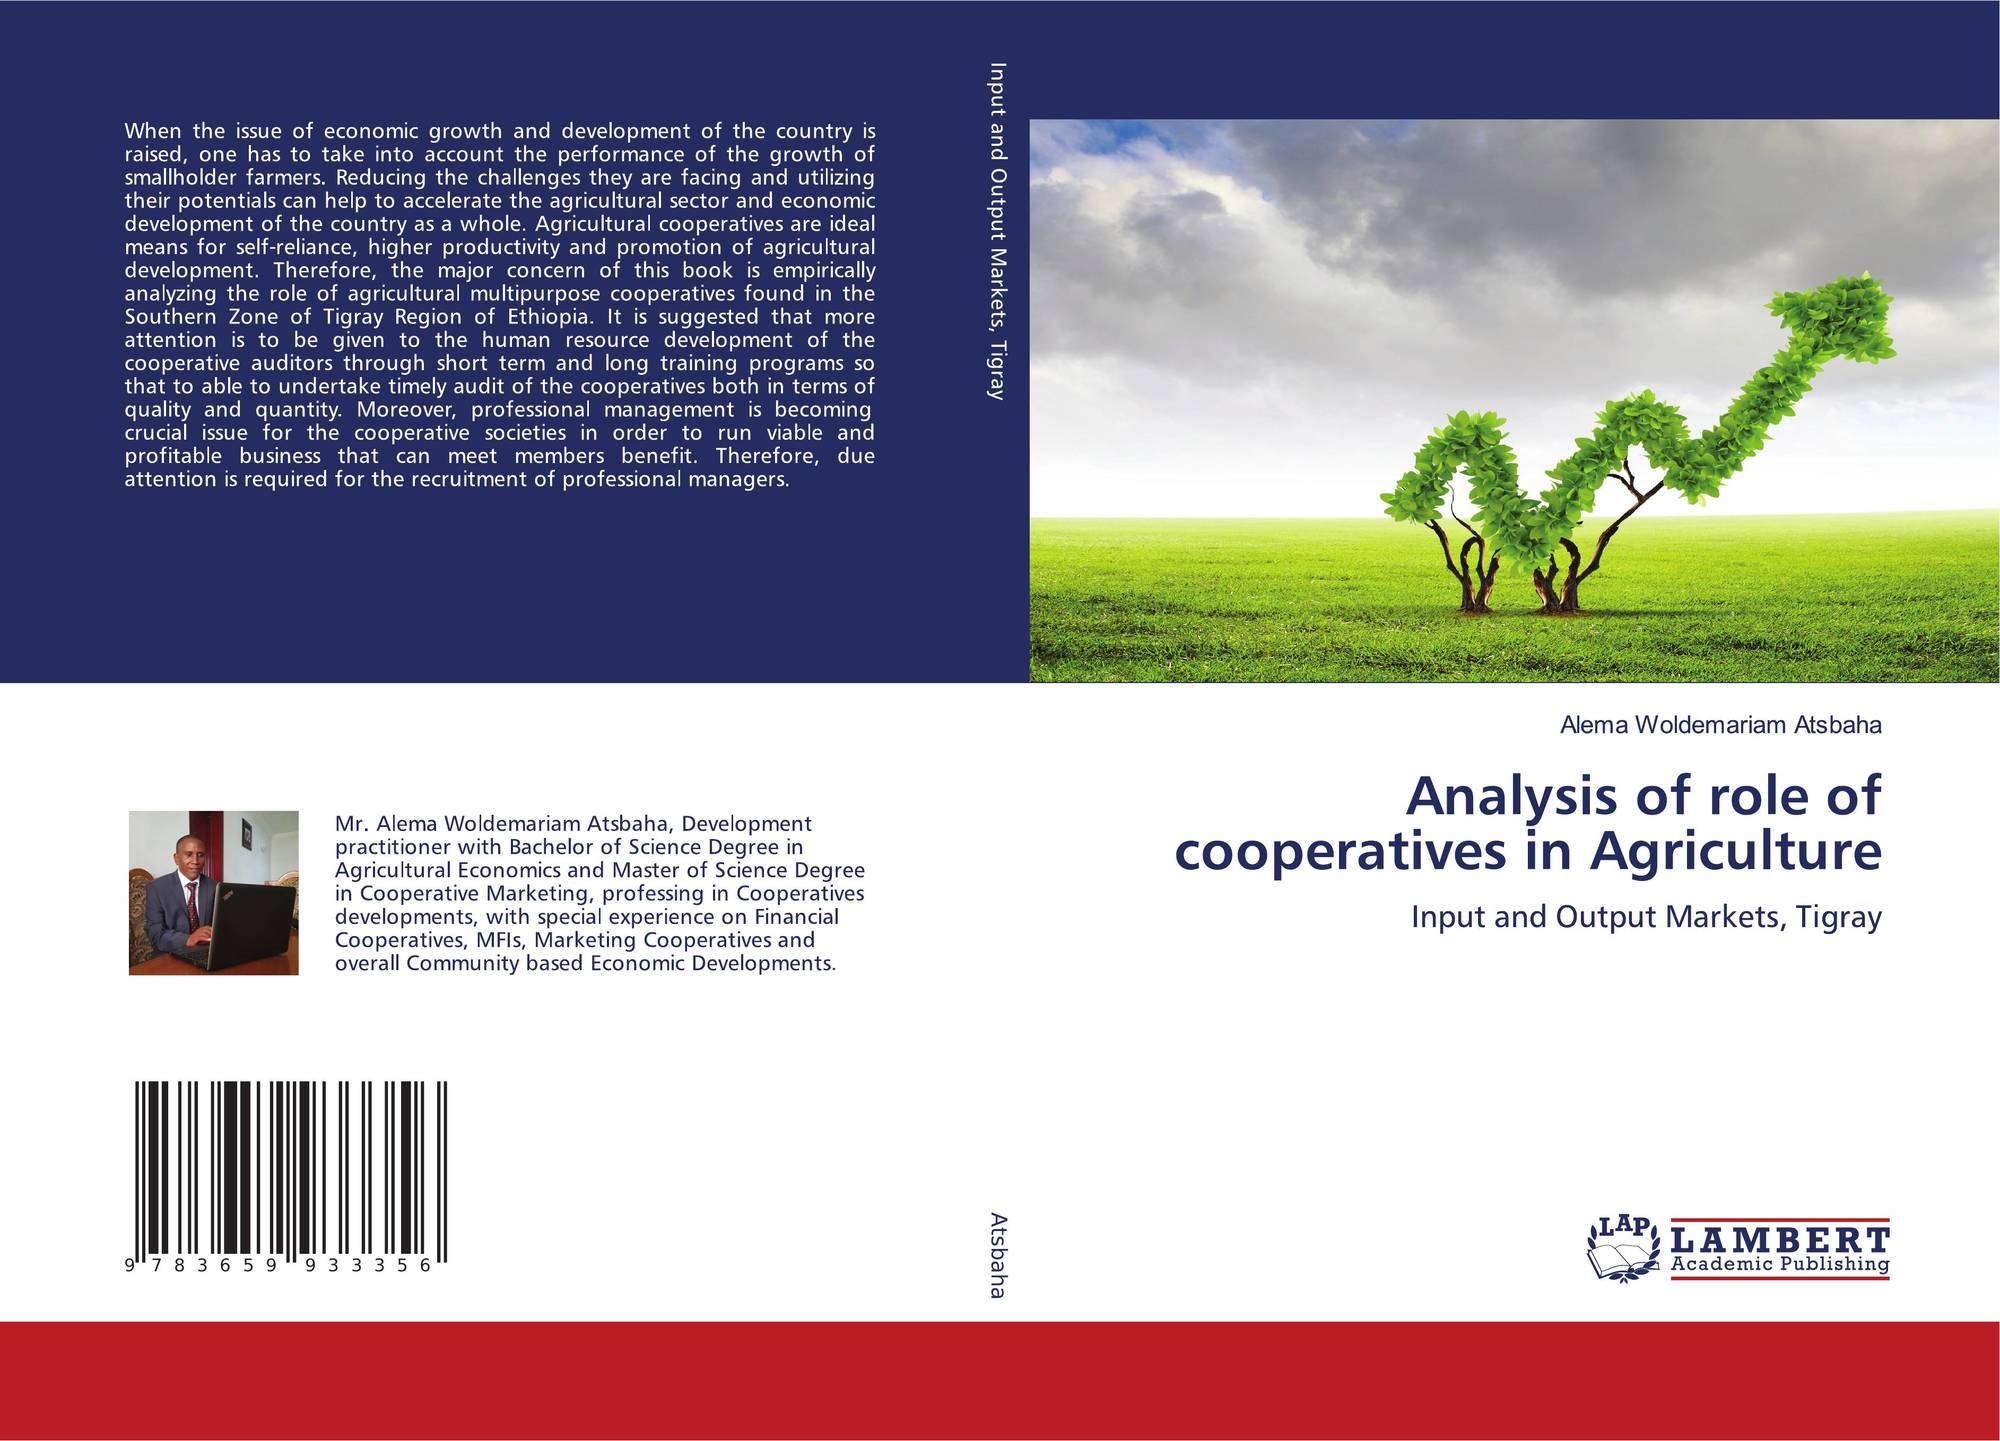 role of agriculture cooperative societies english language essay Saving american agriculture american agriculture has changed dramatically since the first days of mechanized equipment and large-scale crop production role of co-operative banks in agriculture credit: organization, growth and challenges.